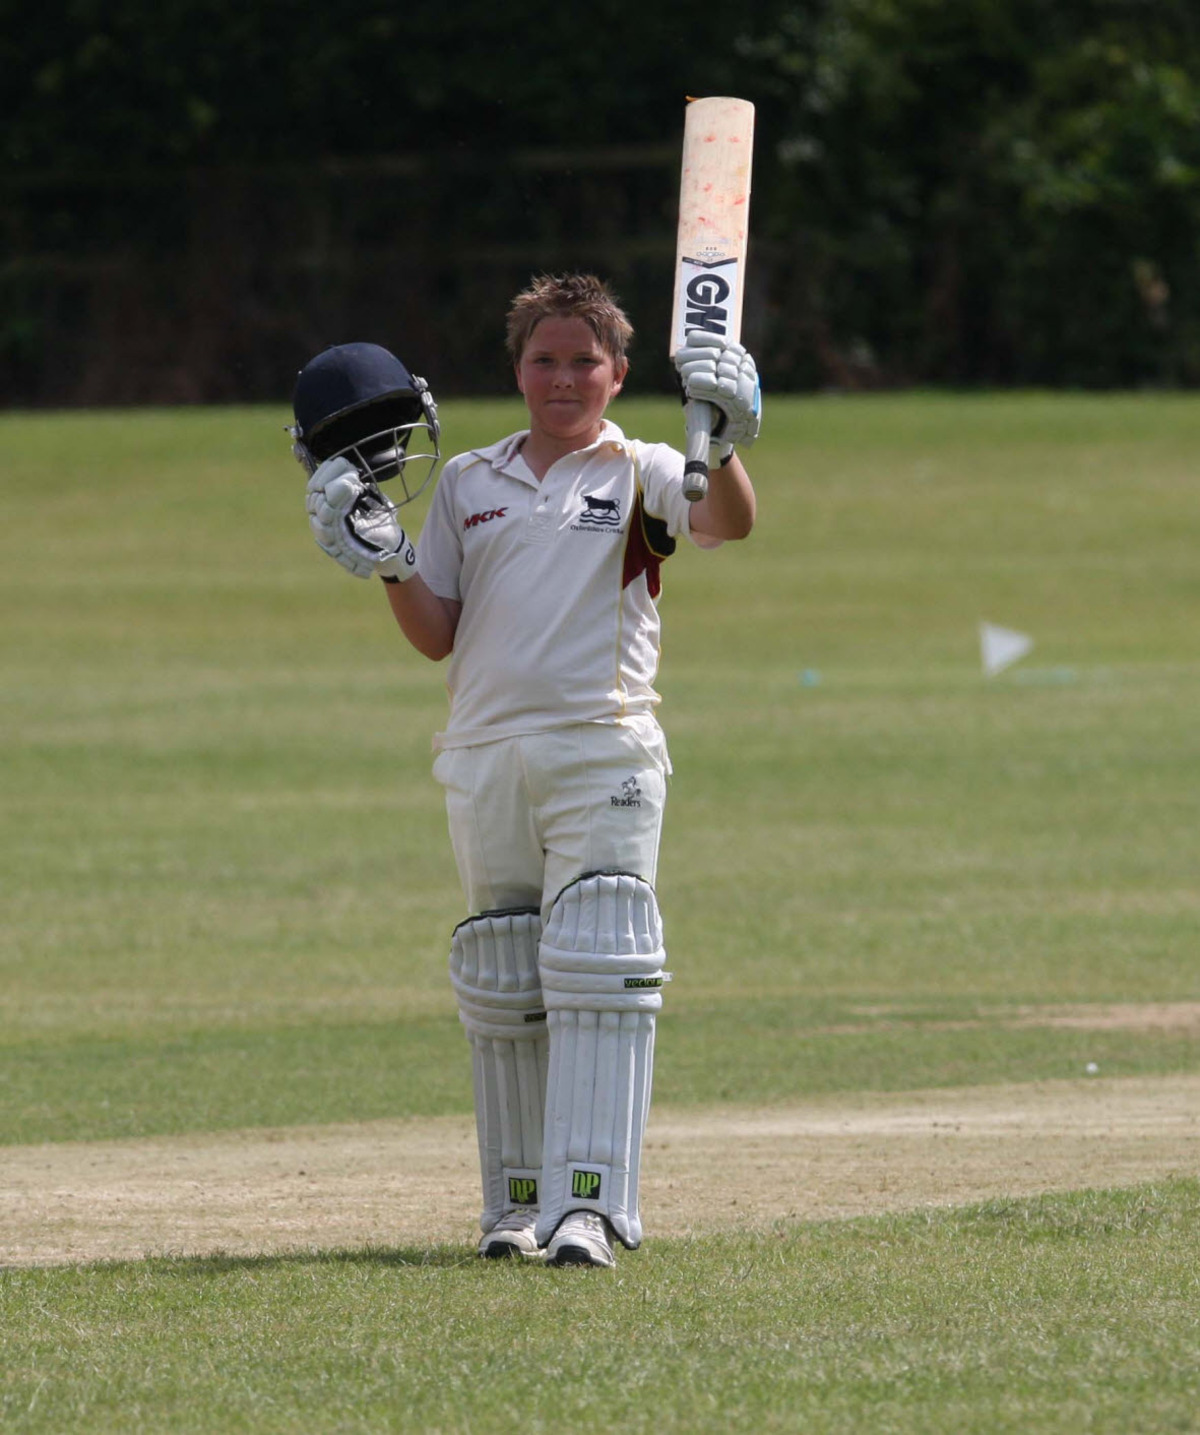 James Coles celebrates his century for Oxfordshire Under 10s against Buckinghamshire